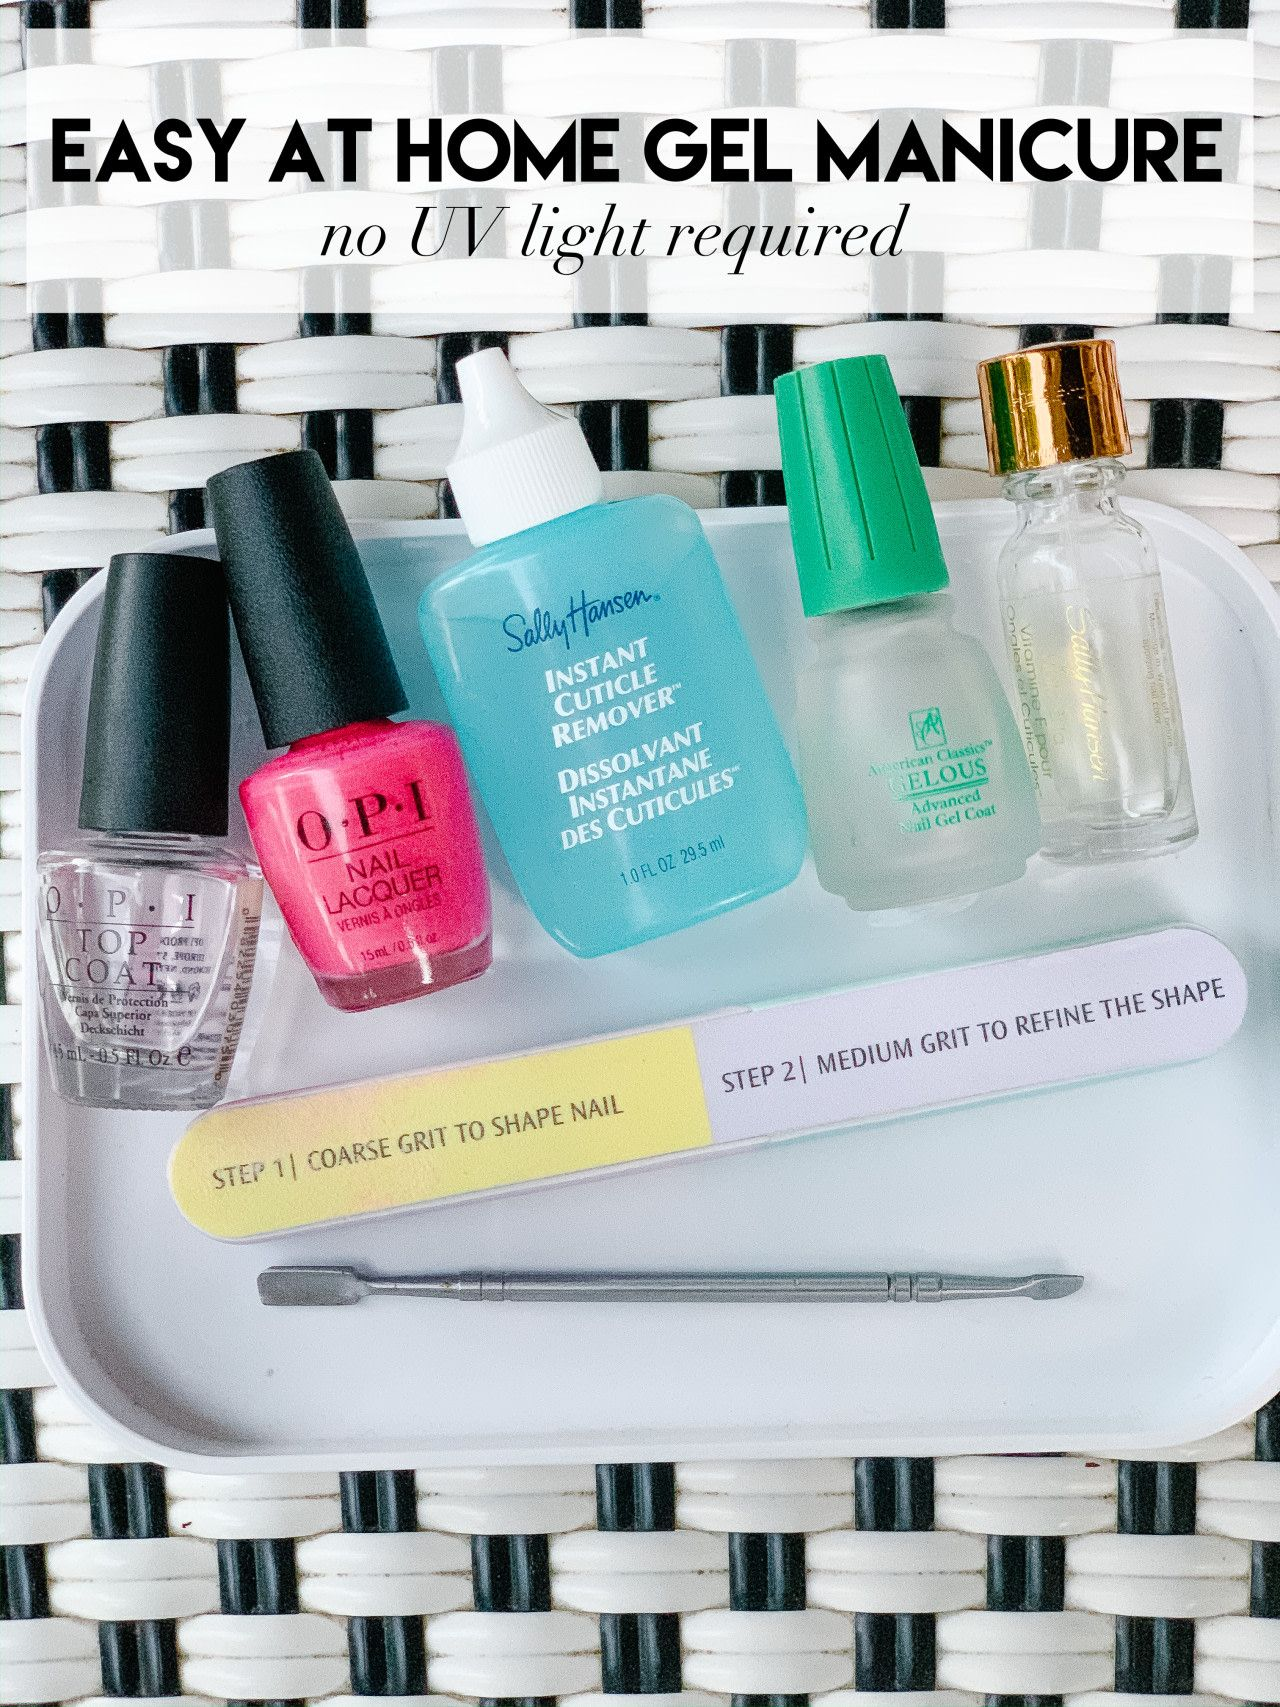 How To Get A Perfect Gel Manicure At Home Without Uv Light Honey We Re Home Gel Manicure At Home Gel Manicure Manicure At Home